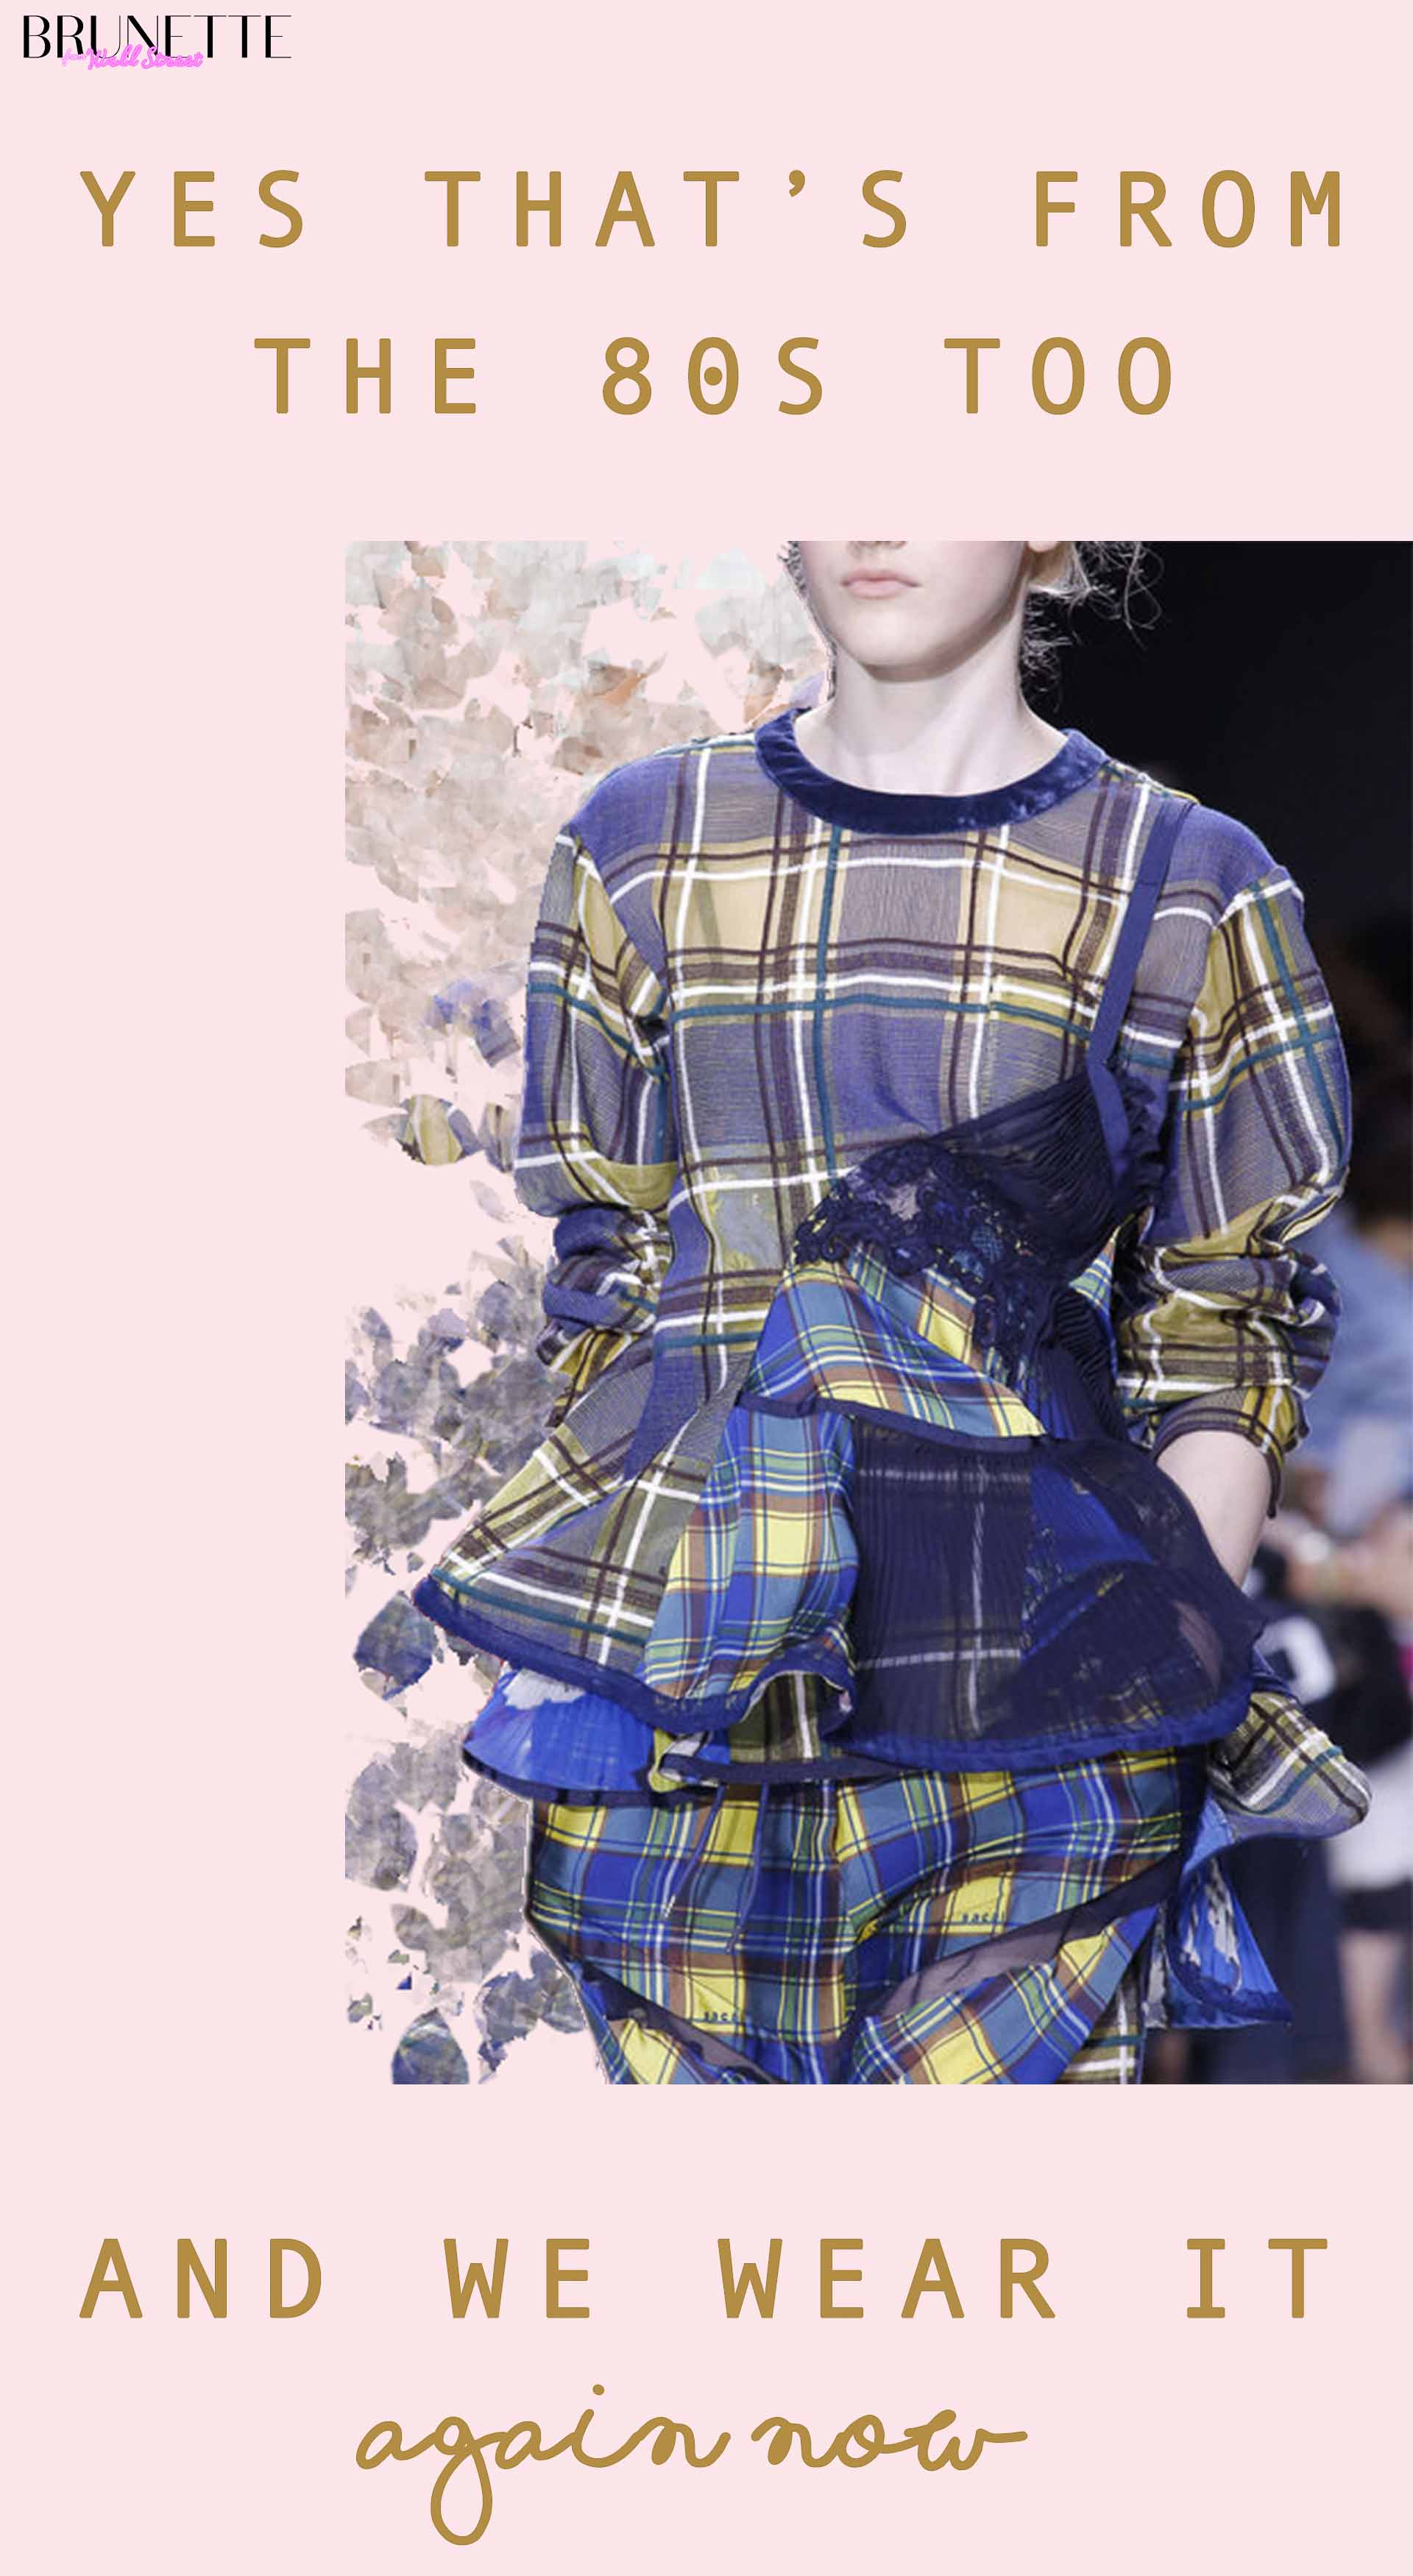 Plaid runway spring summer look with text overlay Yes that's from the 80s too and we wear it again now